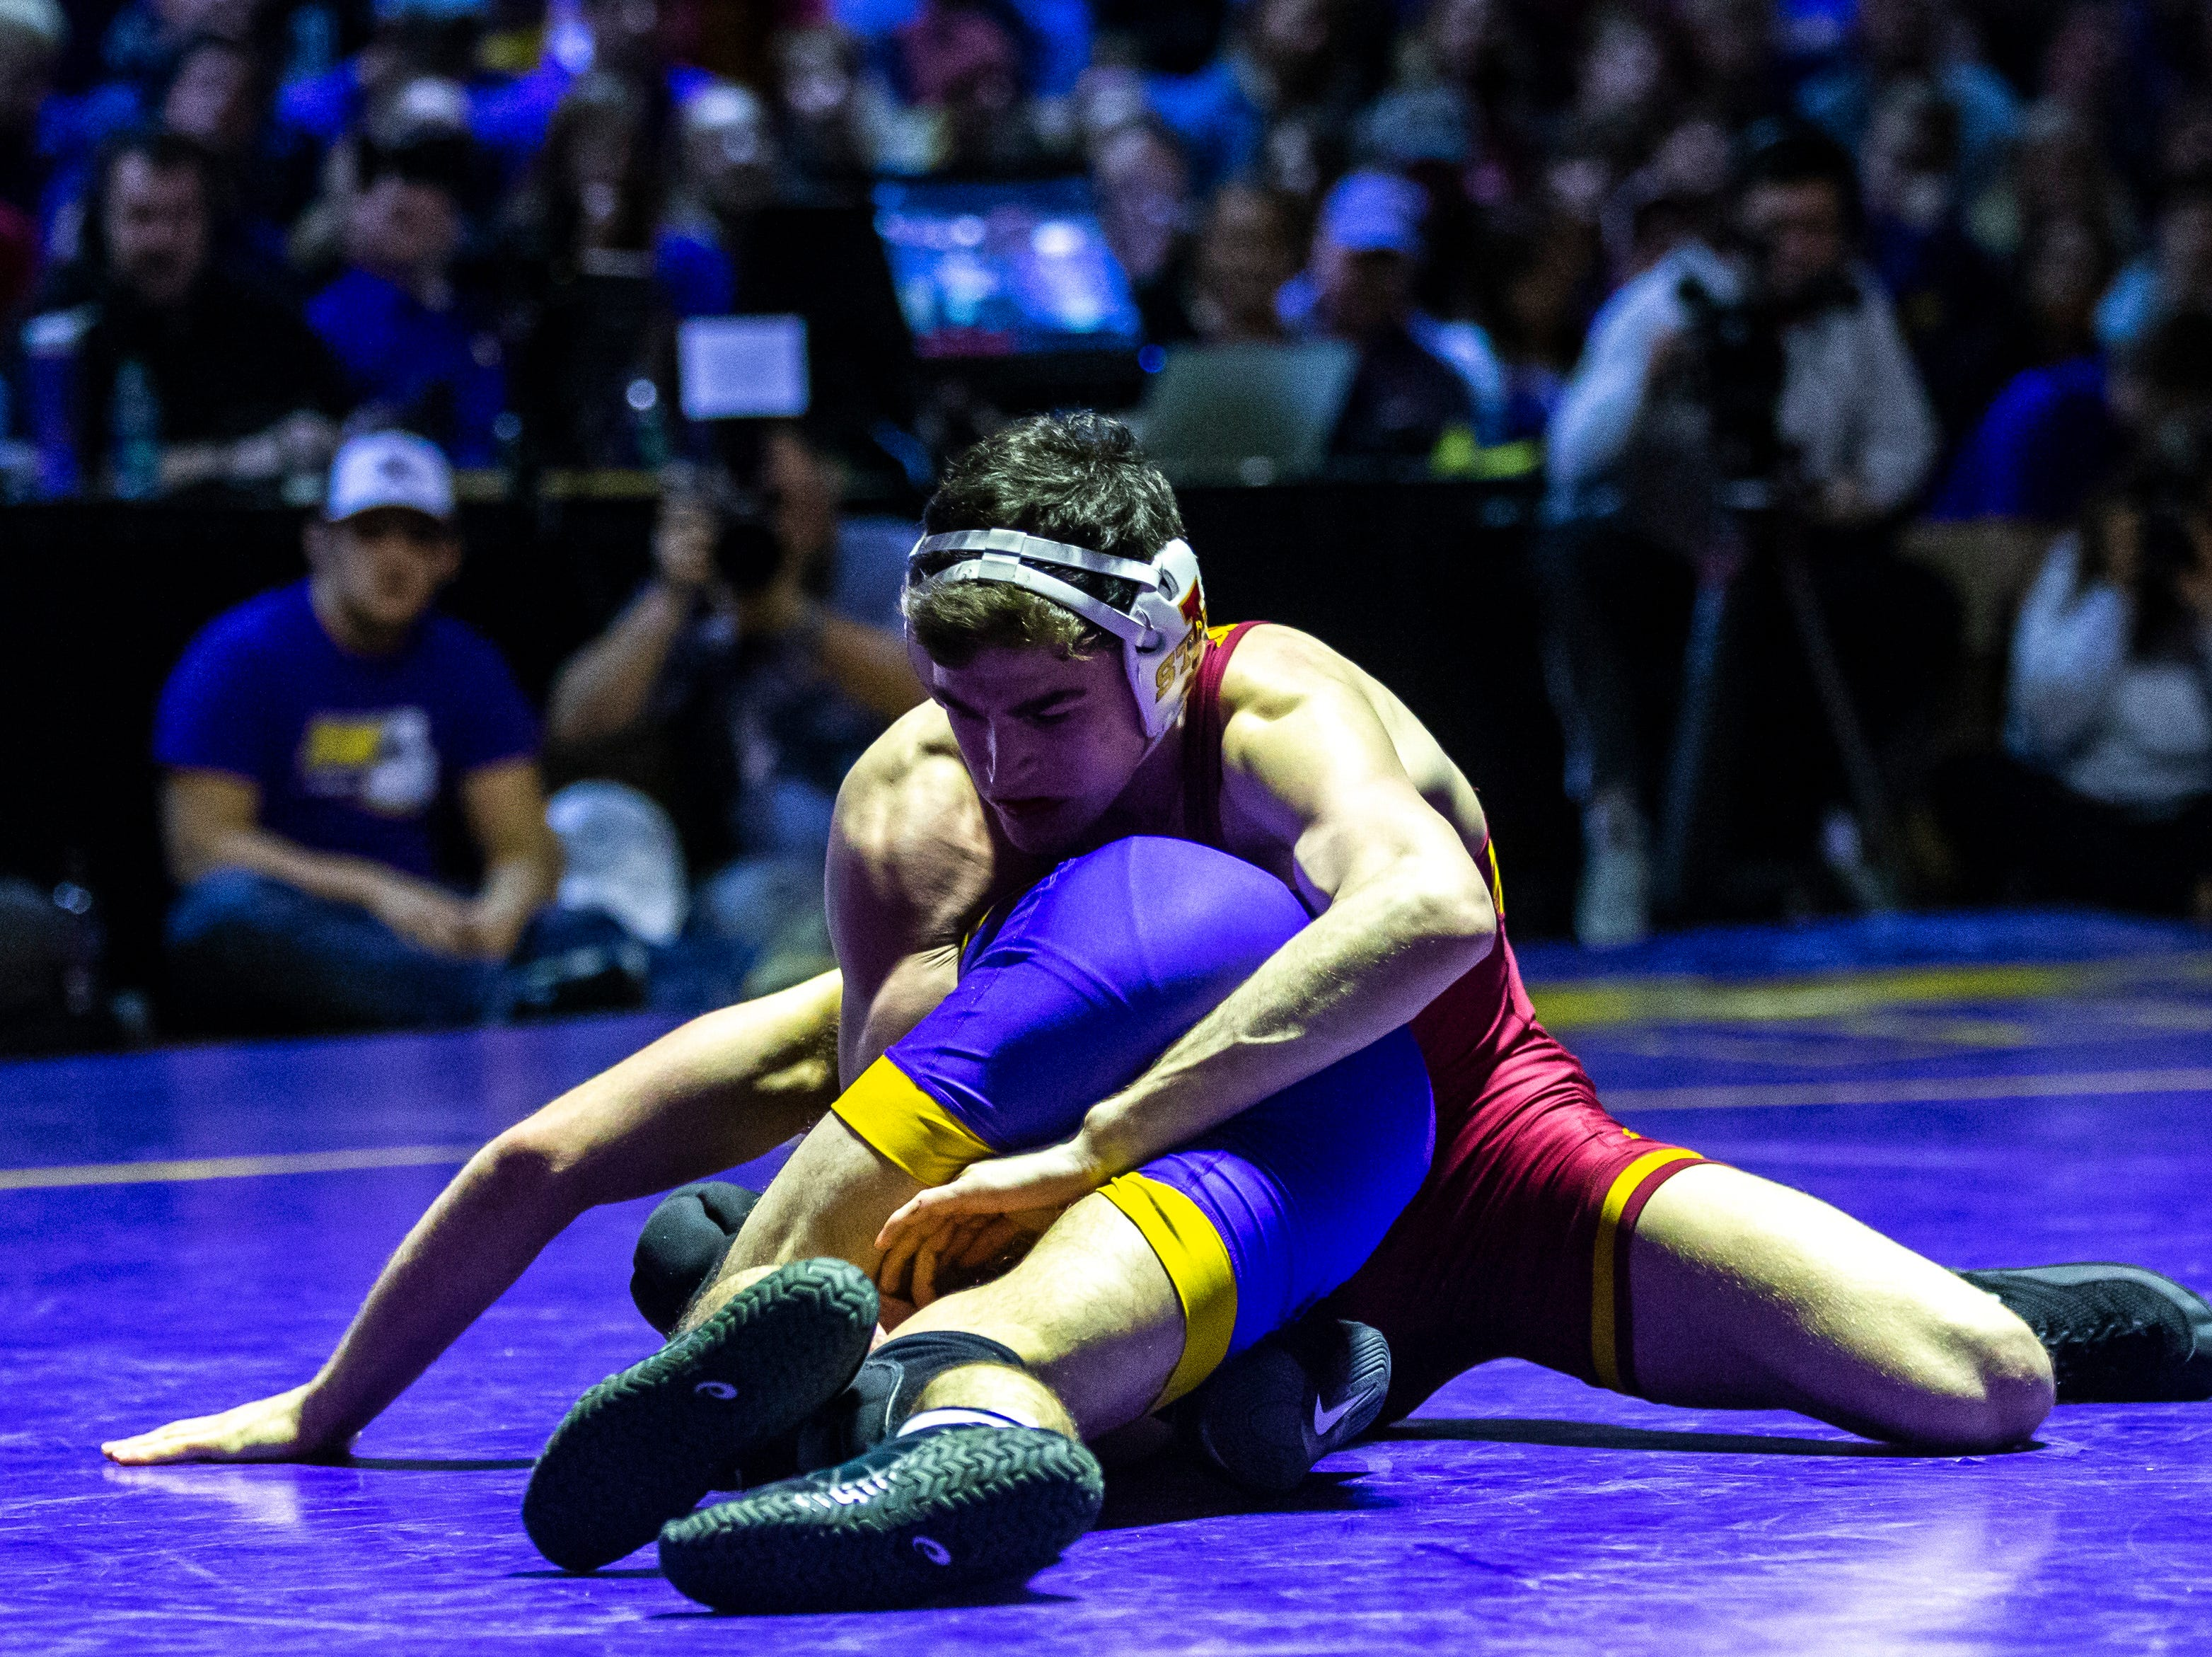 Iowa State's Jarrett Degen wrestles Northern Iowa's Max Thomsen at 149 during a NCAA Big 12 wrestling dual on Thursday, Feb. 21, 2019 at the West Gymnasium in Cedar Falls, Iowa.